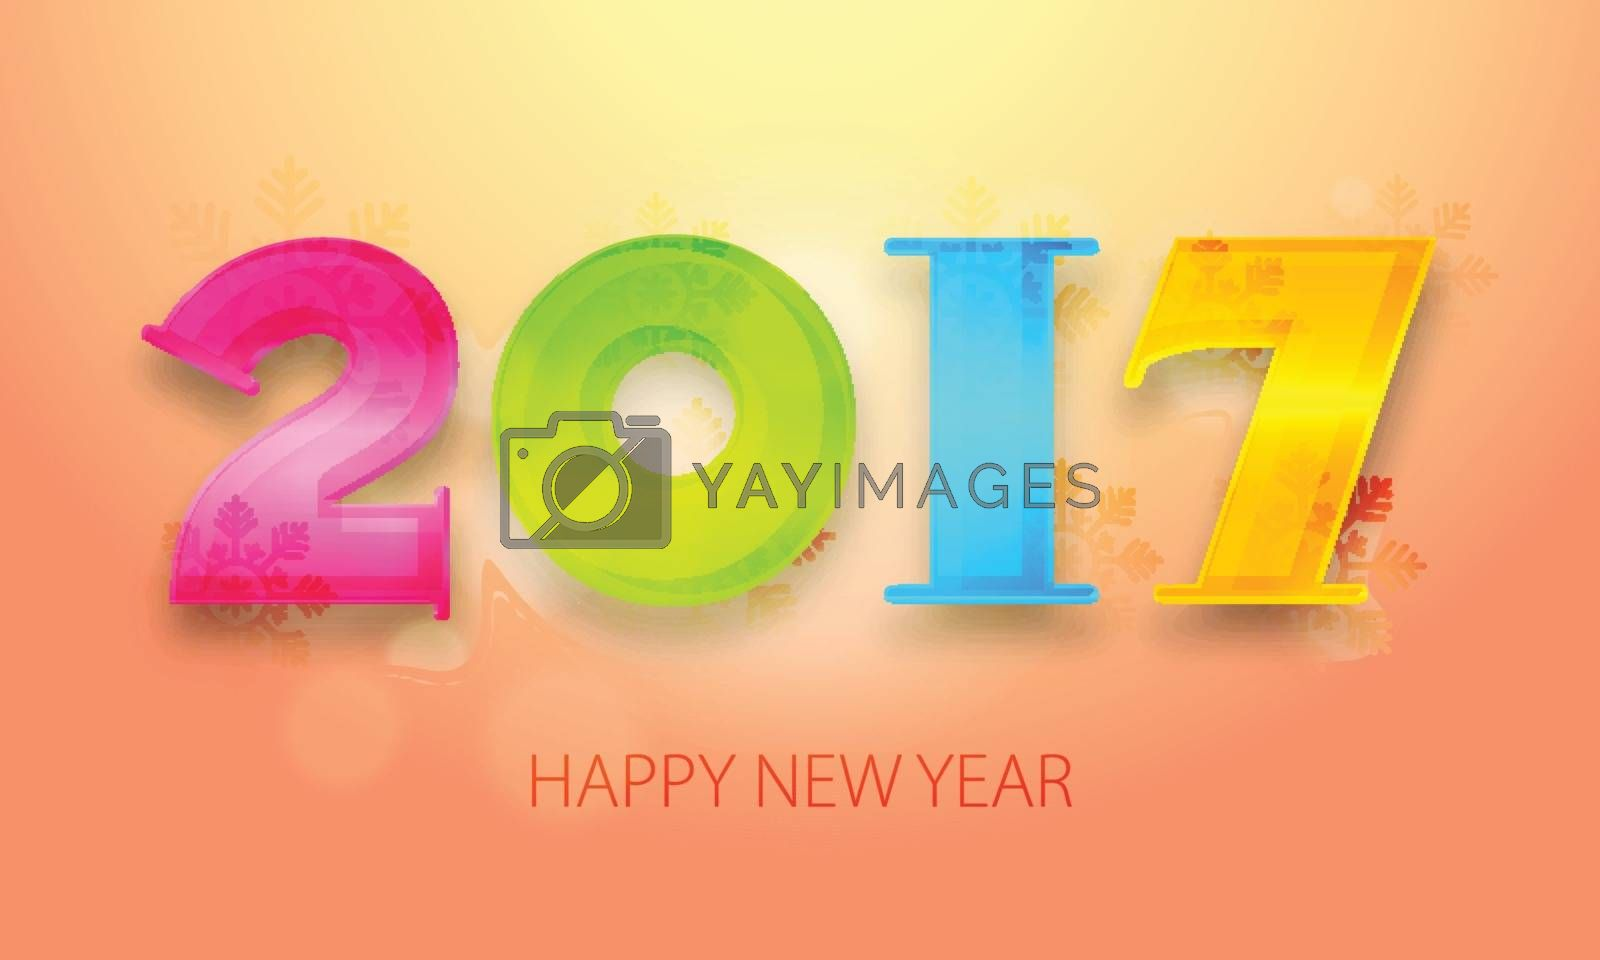 Glossy Colorful Text 2017 on snowflakes decorated background, Elegant Greeting Card design for Happy New Year celebration.